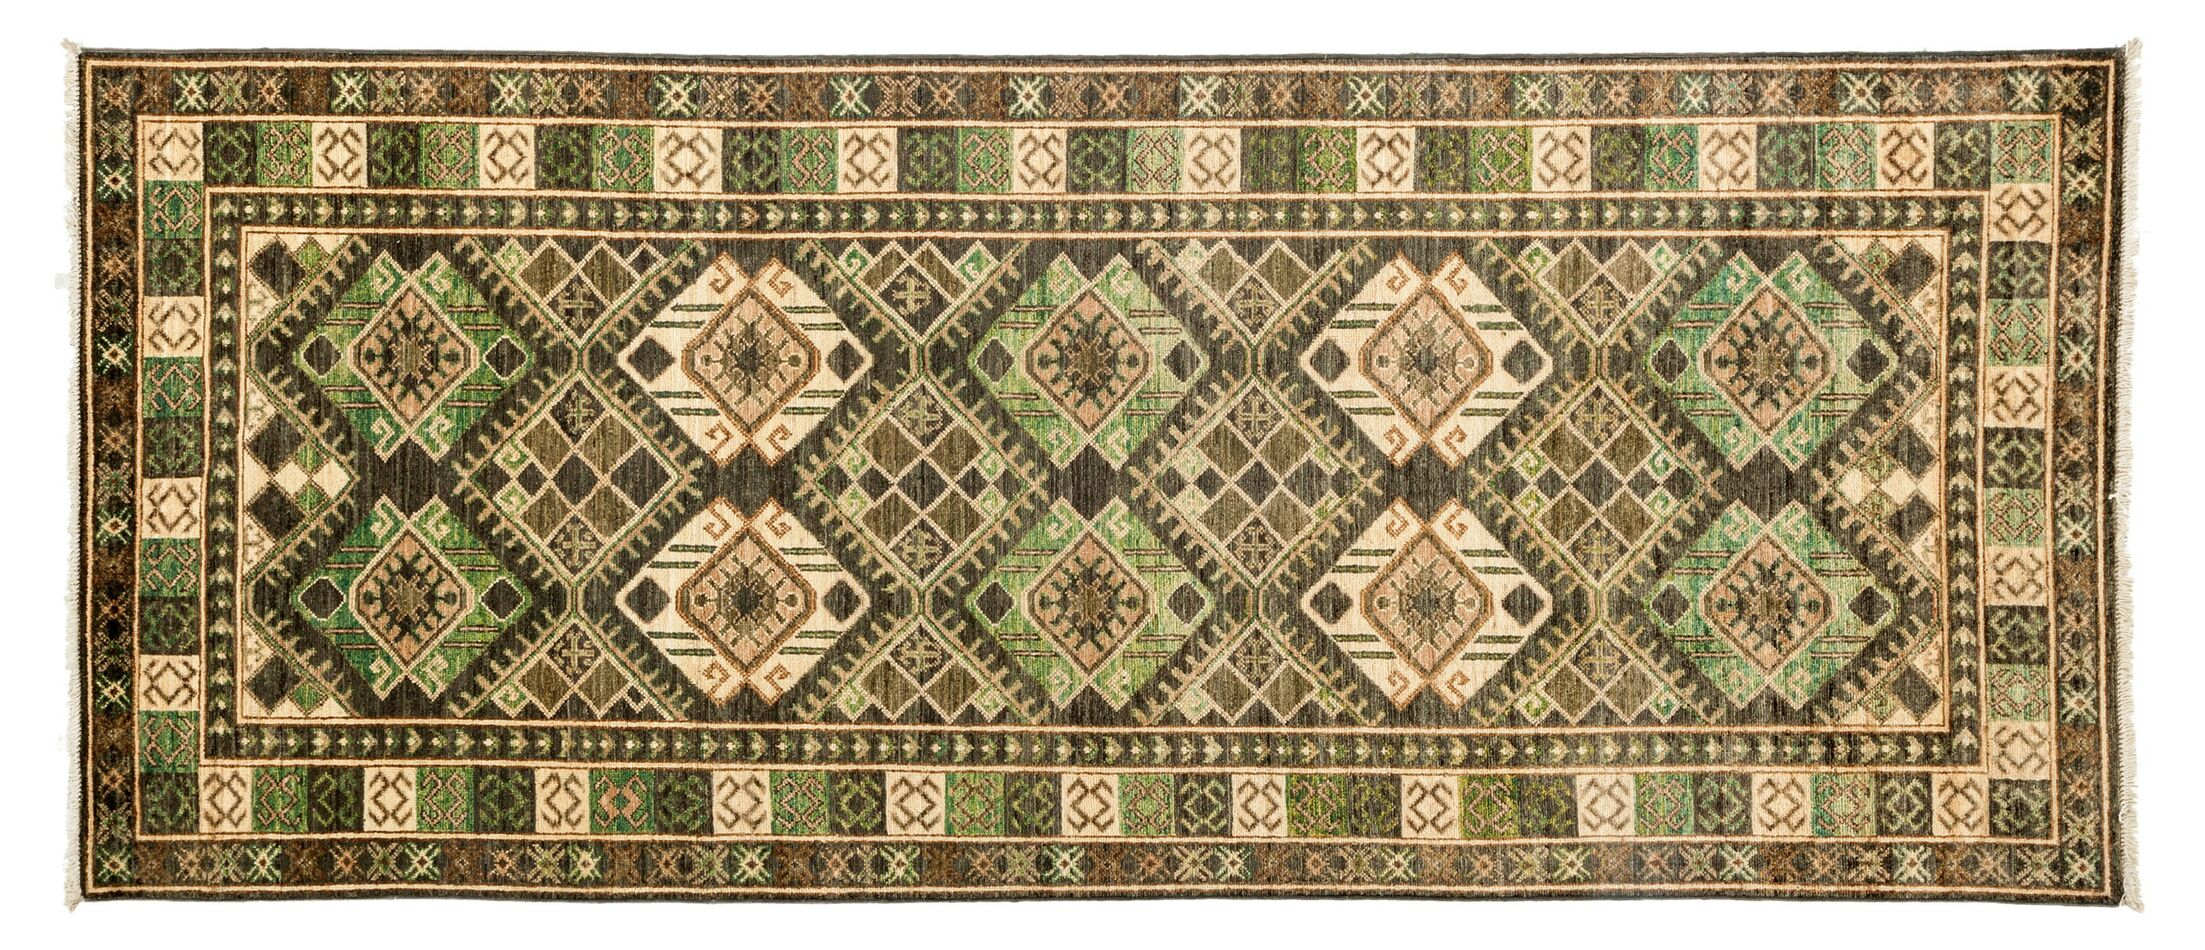 One-of-a-Kind Ersari Hand-Knotted Green Area Rug Rug Size: Runner 4' x 9'5